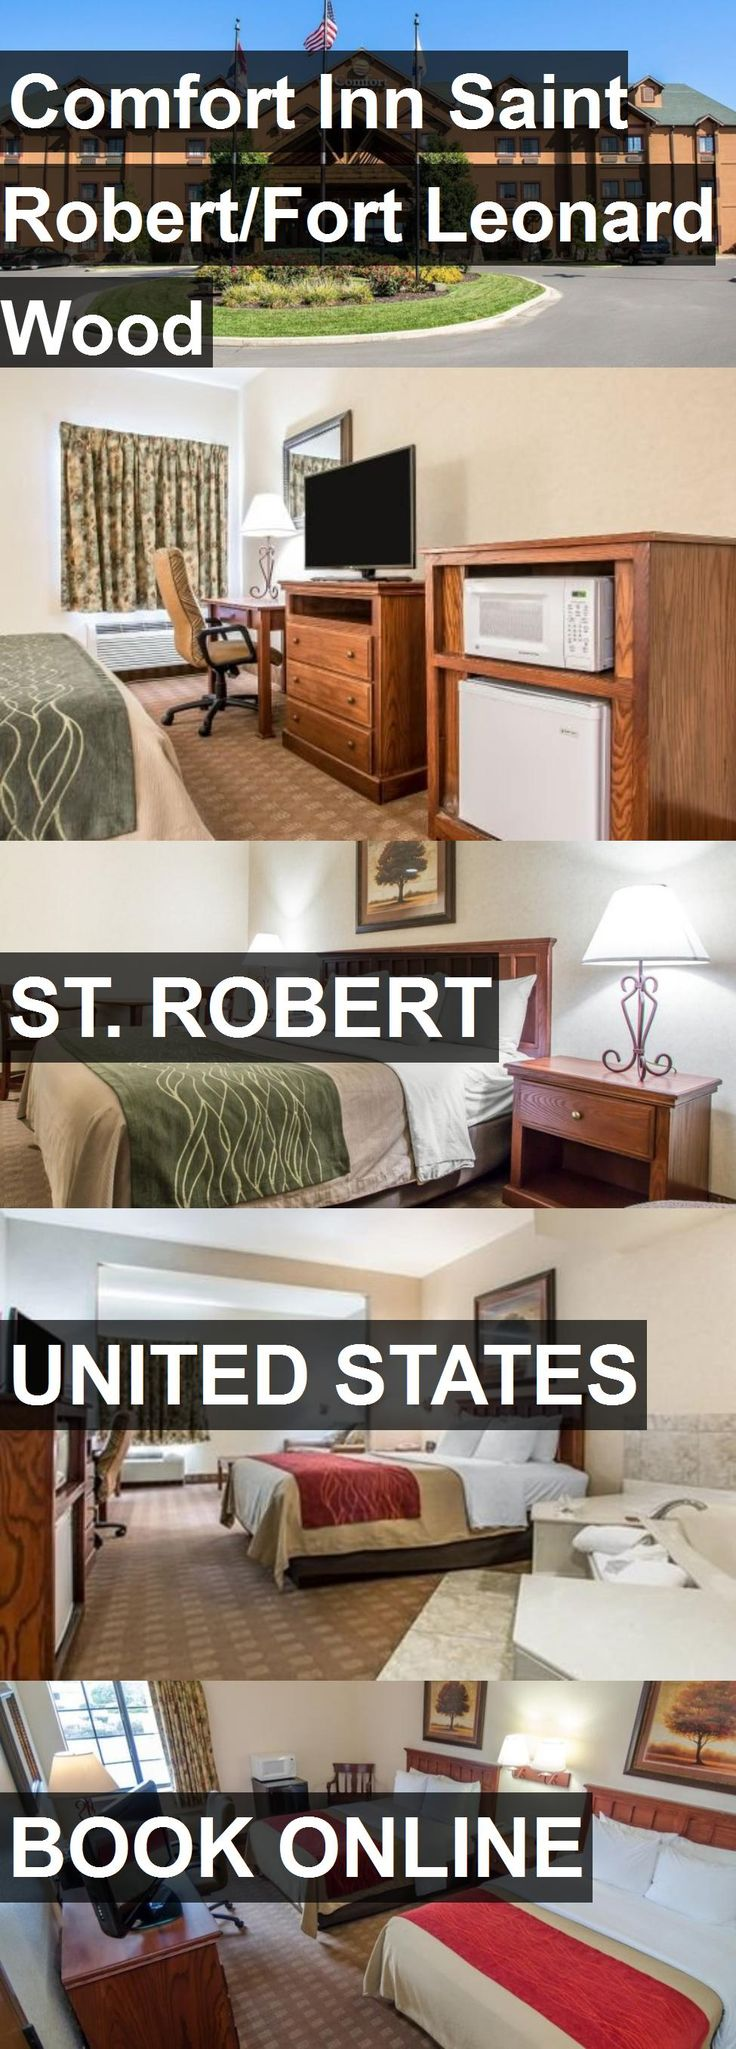 Hotel Comfort Inn Saint Robert/Fort Leonard Wood in St. Robert, United States. For more information, photos, reviews and best prices please follow the link. #UnitedStates #St.Robert #ComfortInnSaintRobert/FortLeonardWood #hotel #travel #vacation